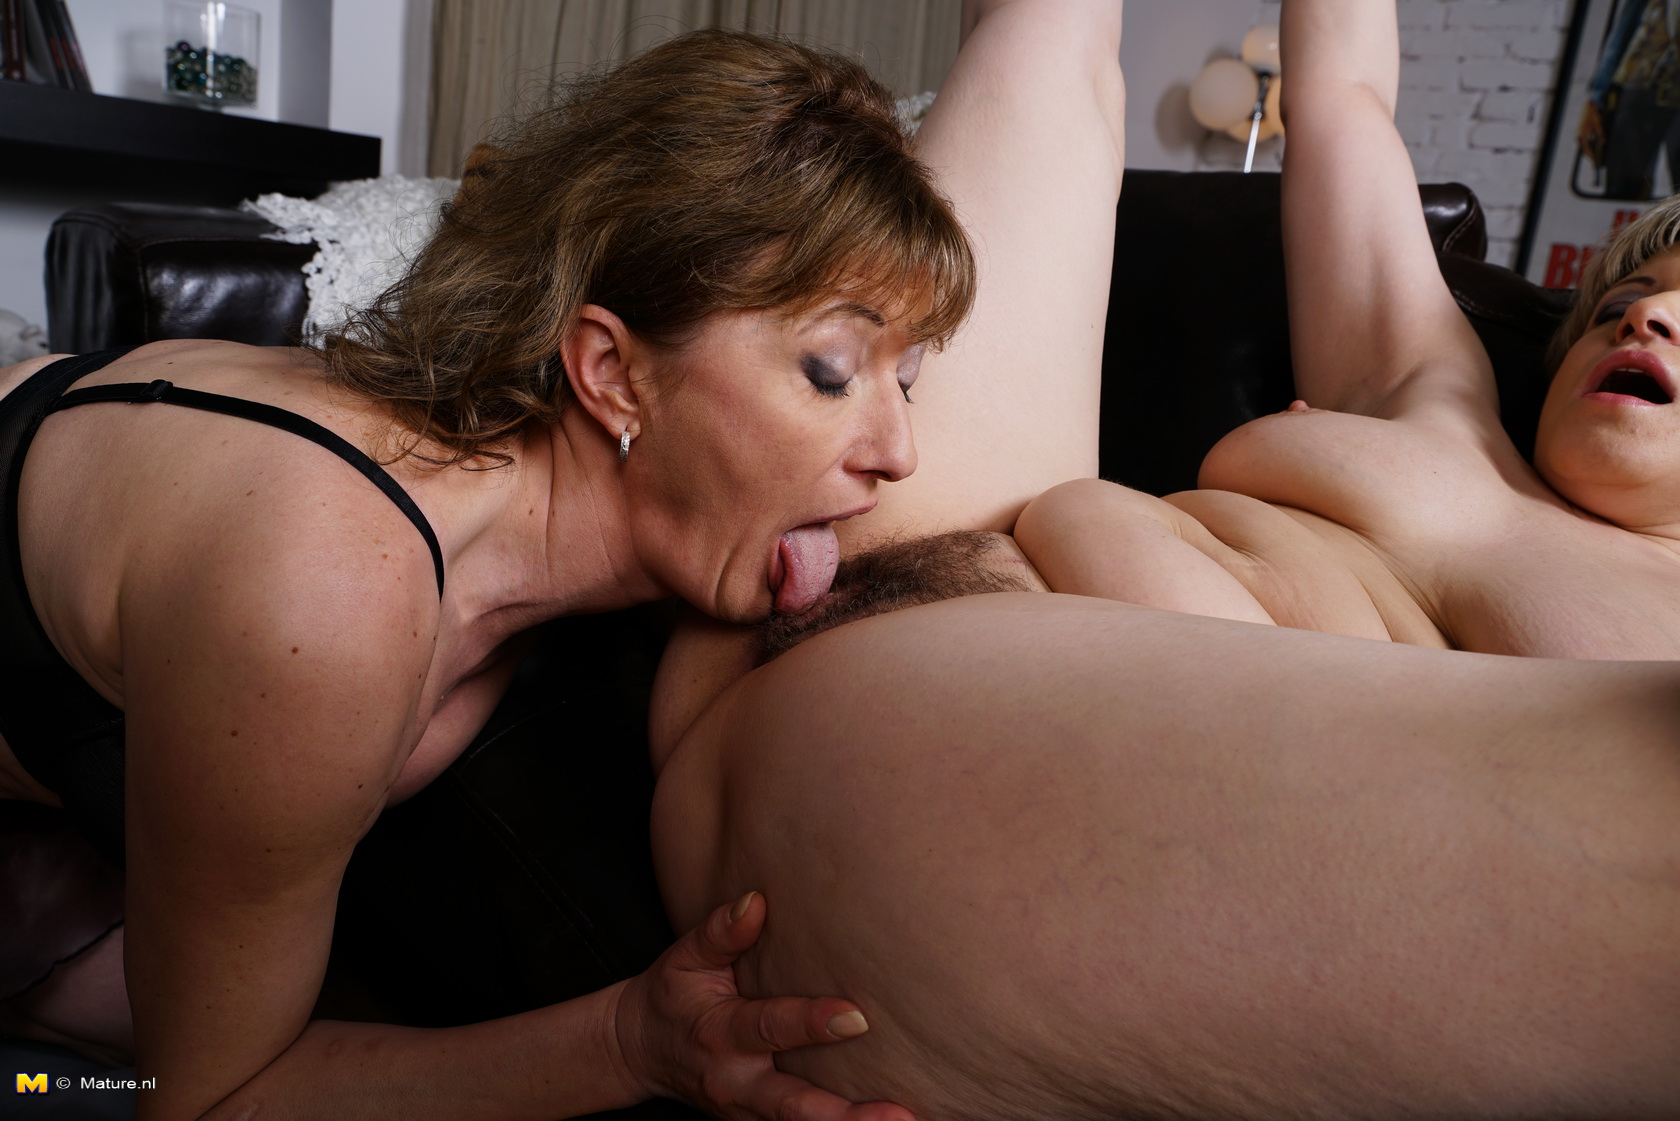 Hot mom clips